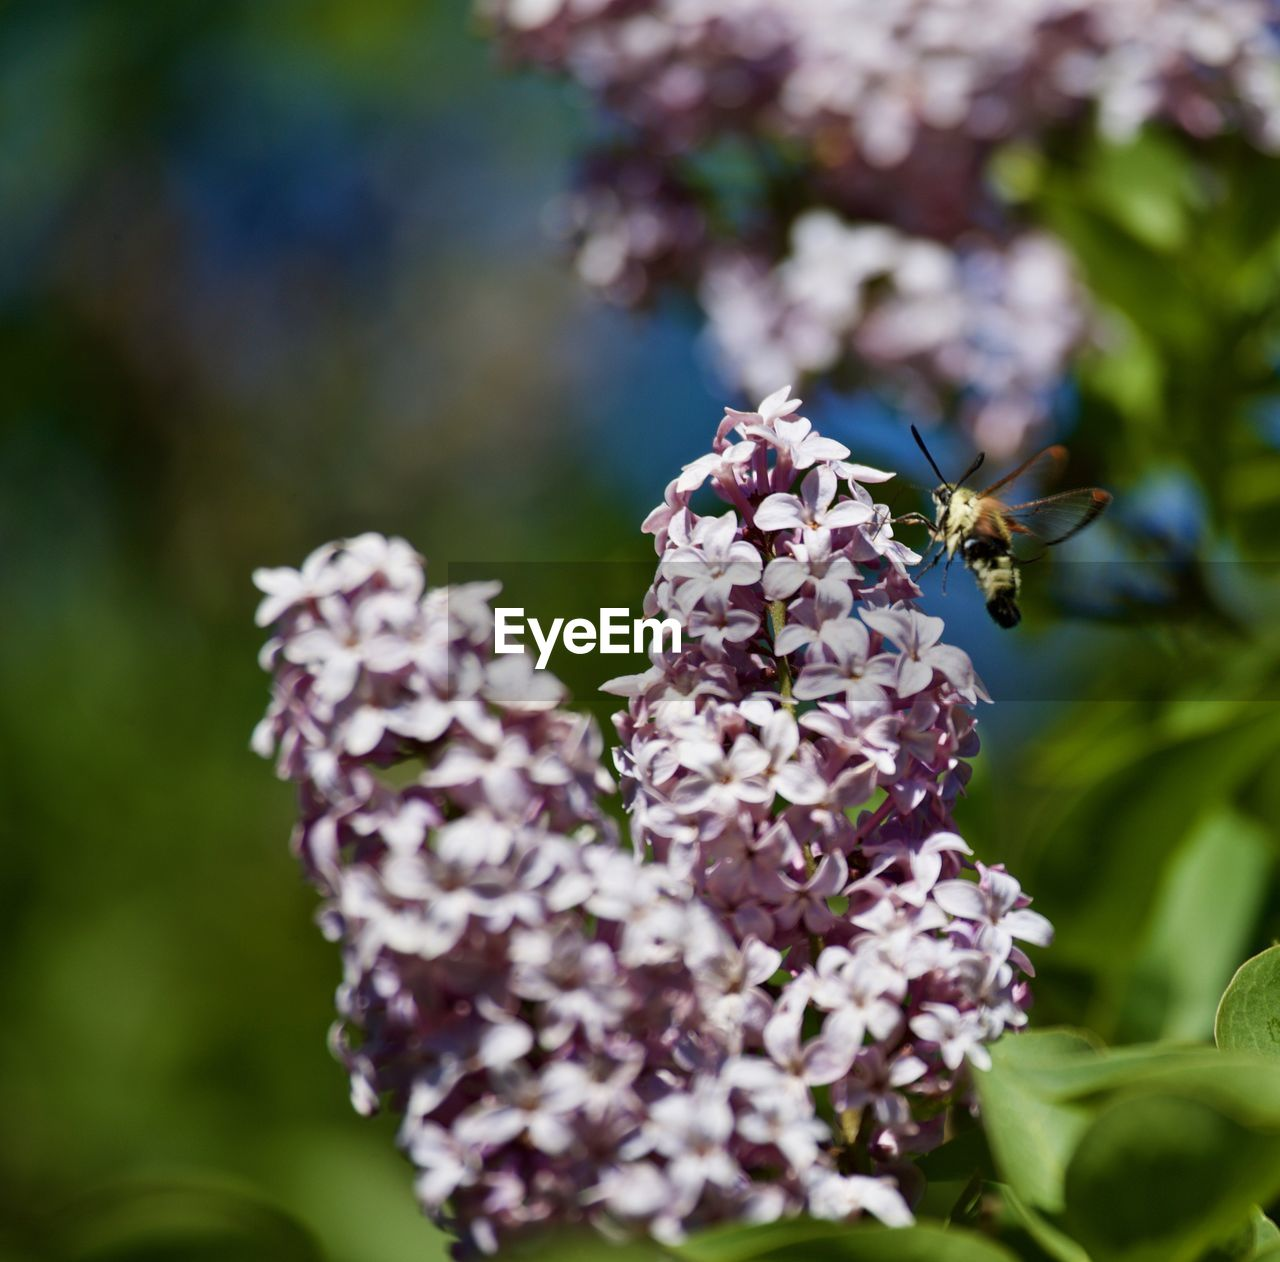 flower, invertebrate, insect, plant, flowering plant, animals in the wild, animal themes, animal wildlife, beauty in nature, freshness, fragility, animal, one animal, growth, vulnerability, bee, petal, close-up, flower head, pollination, no people, purple, outdoors, hovering, lilac, butterfly - insect